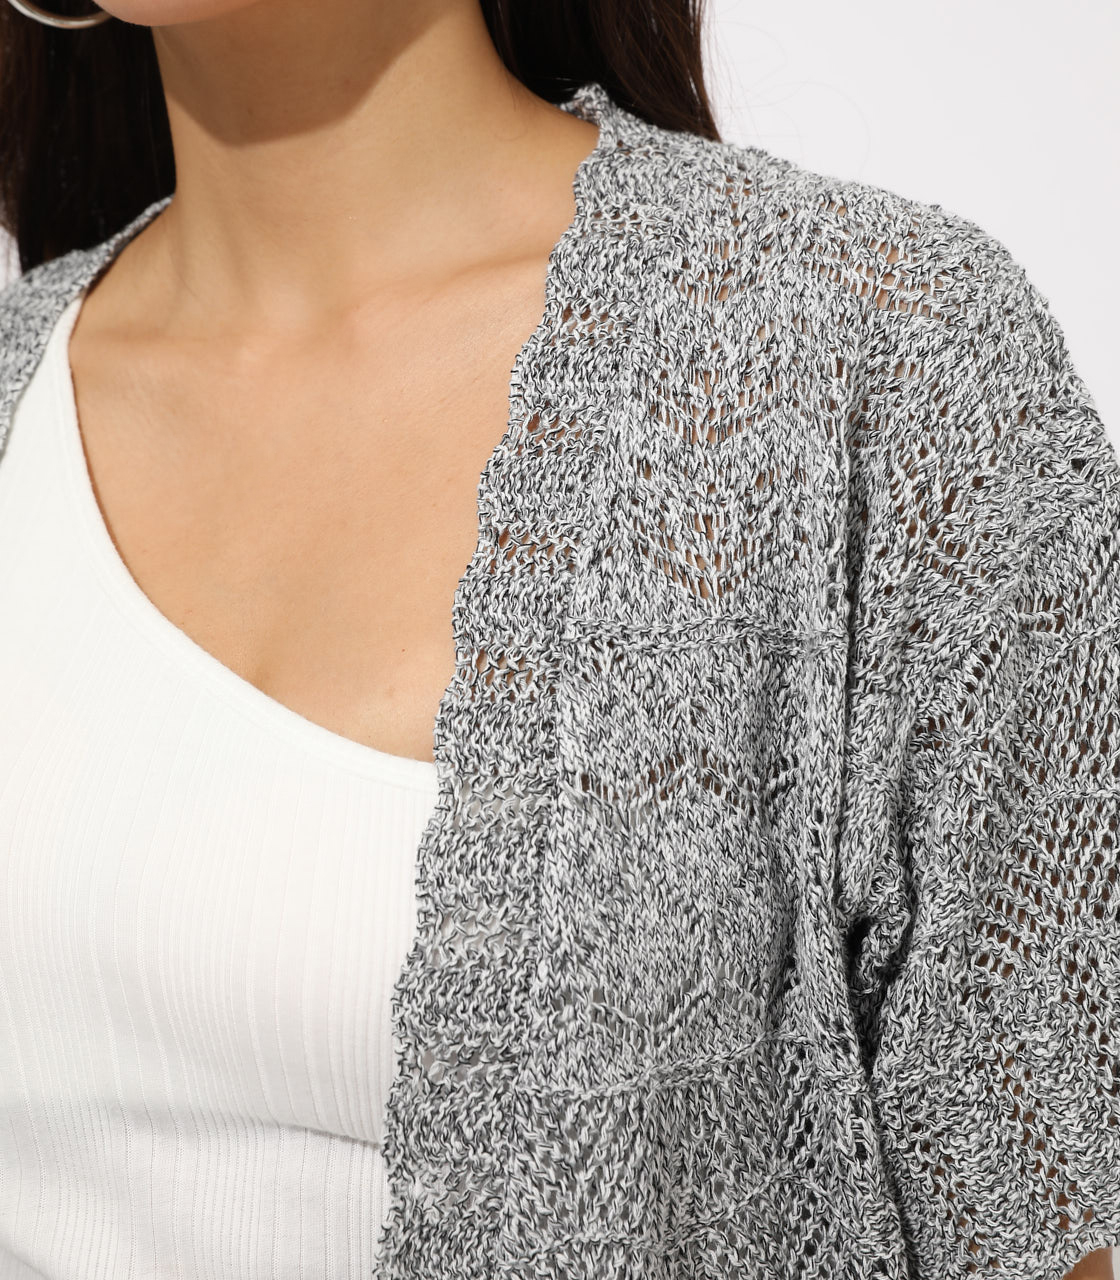 【AZUL BY MOUSSY】CROCHET STYLE CARDIGAN 詳細画像 柄BLK 7